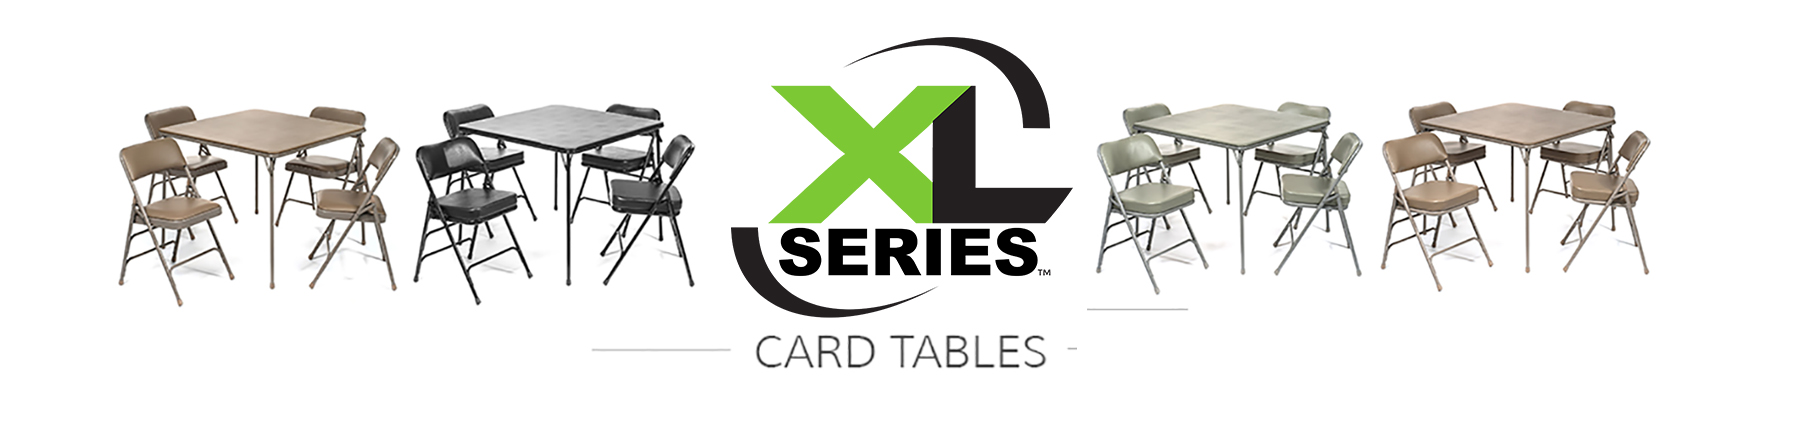 xl-series-card-tables-banner.jpg